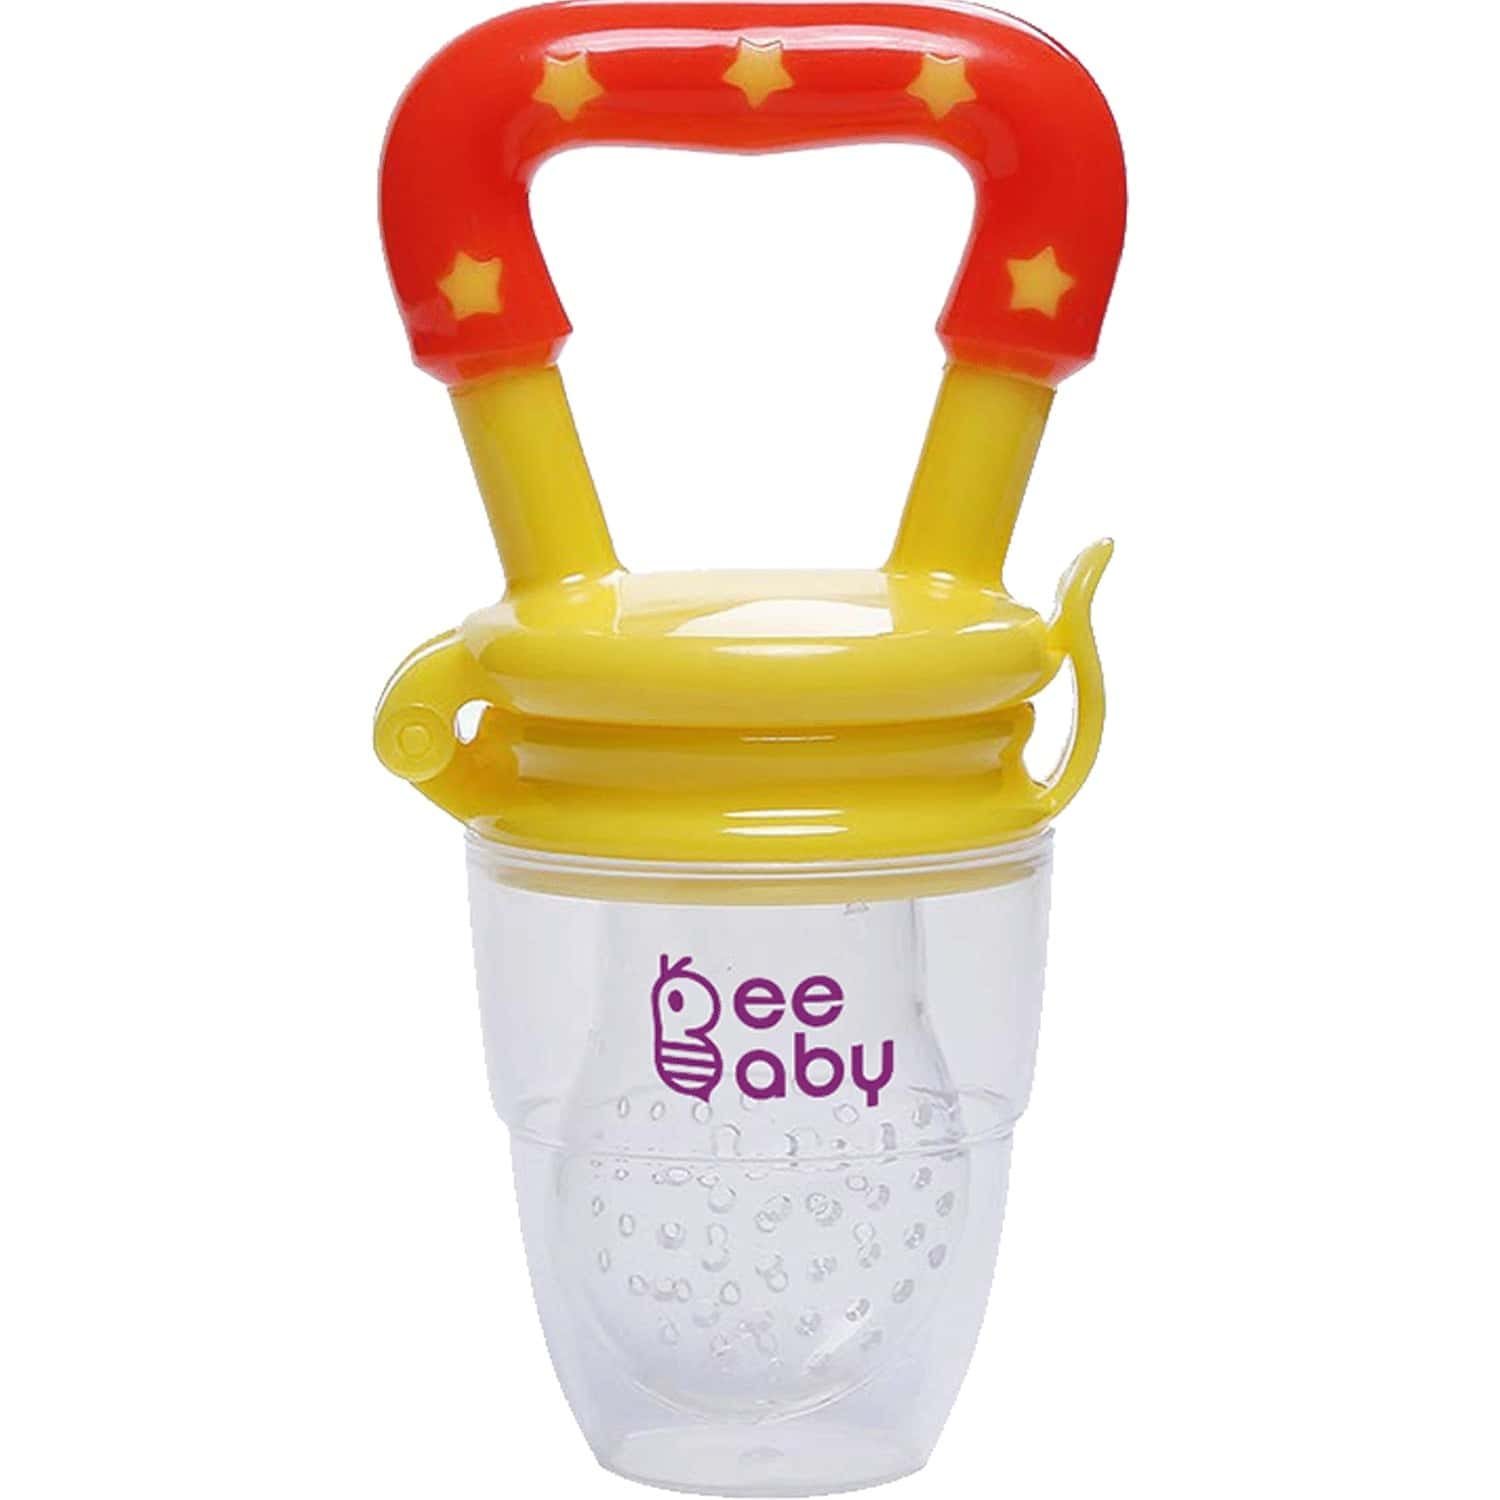 Beebaby Silicone Food And Fruit Nibbler / Feeder With Extra Silicone Mesh (yellow)